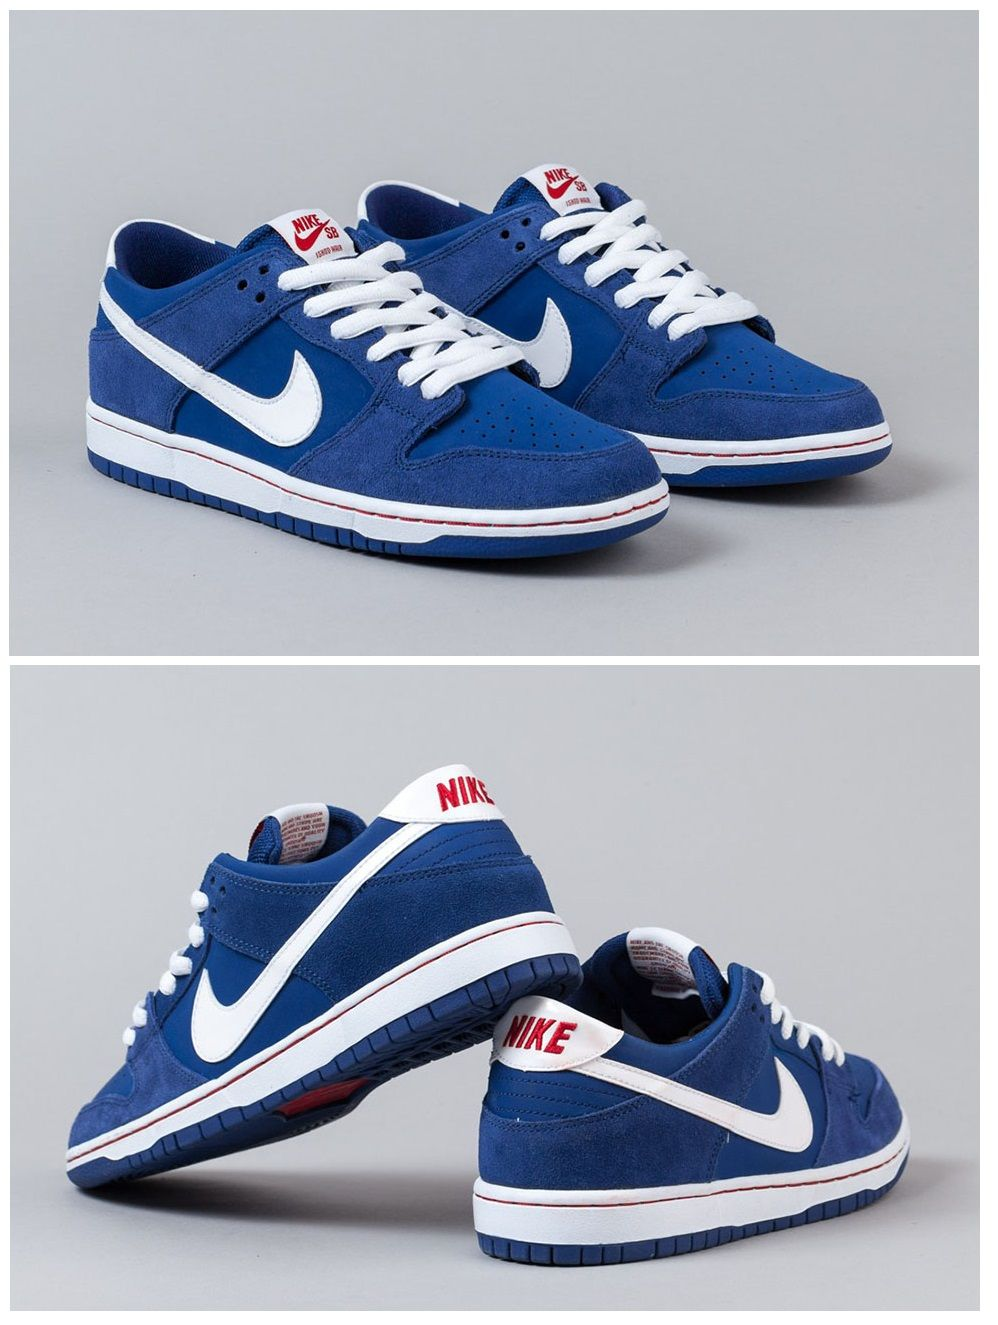 Ishod Wair x Nike SB Dunk Low: Blue. Sneakers ...